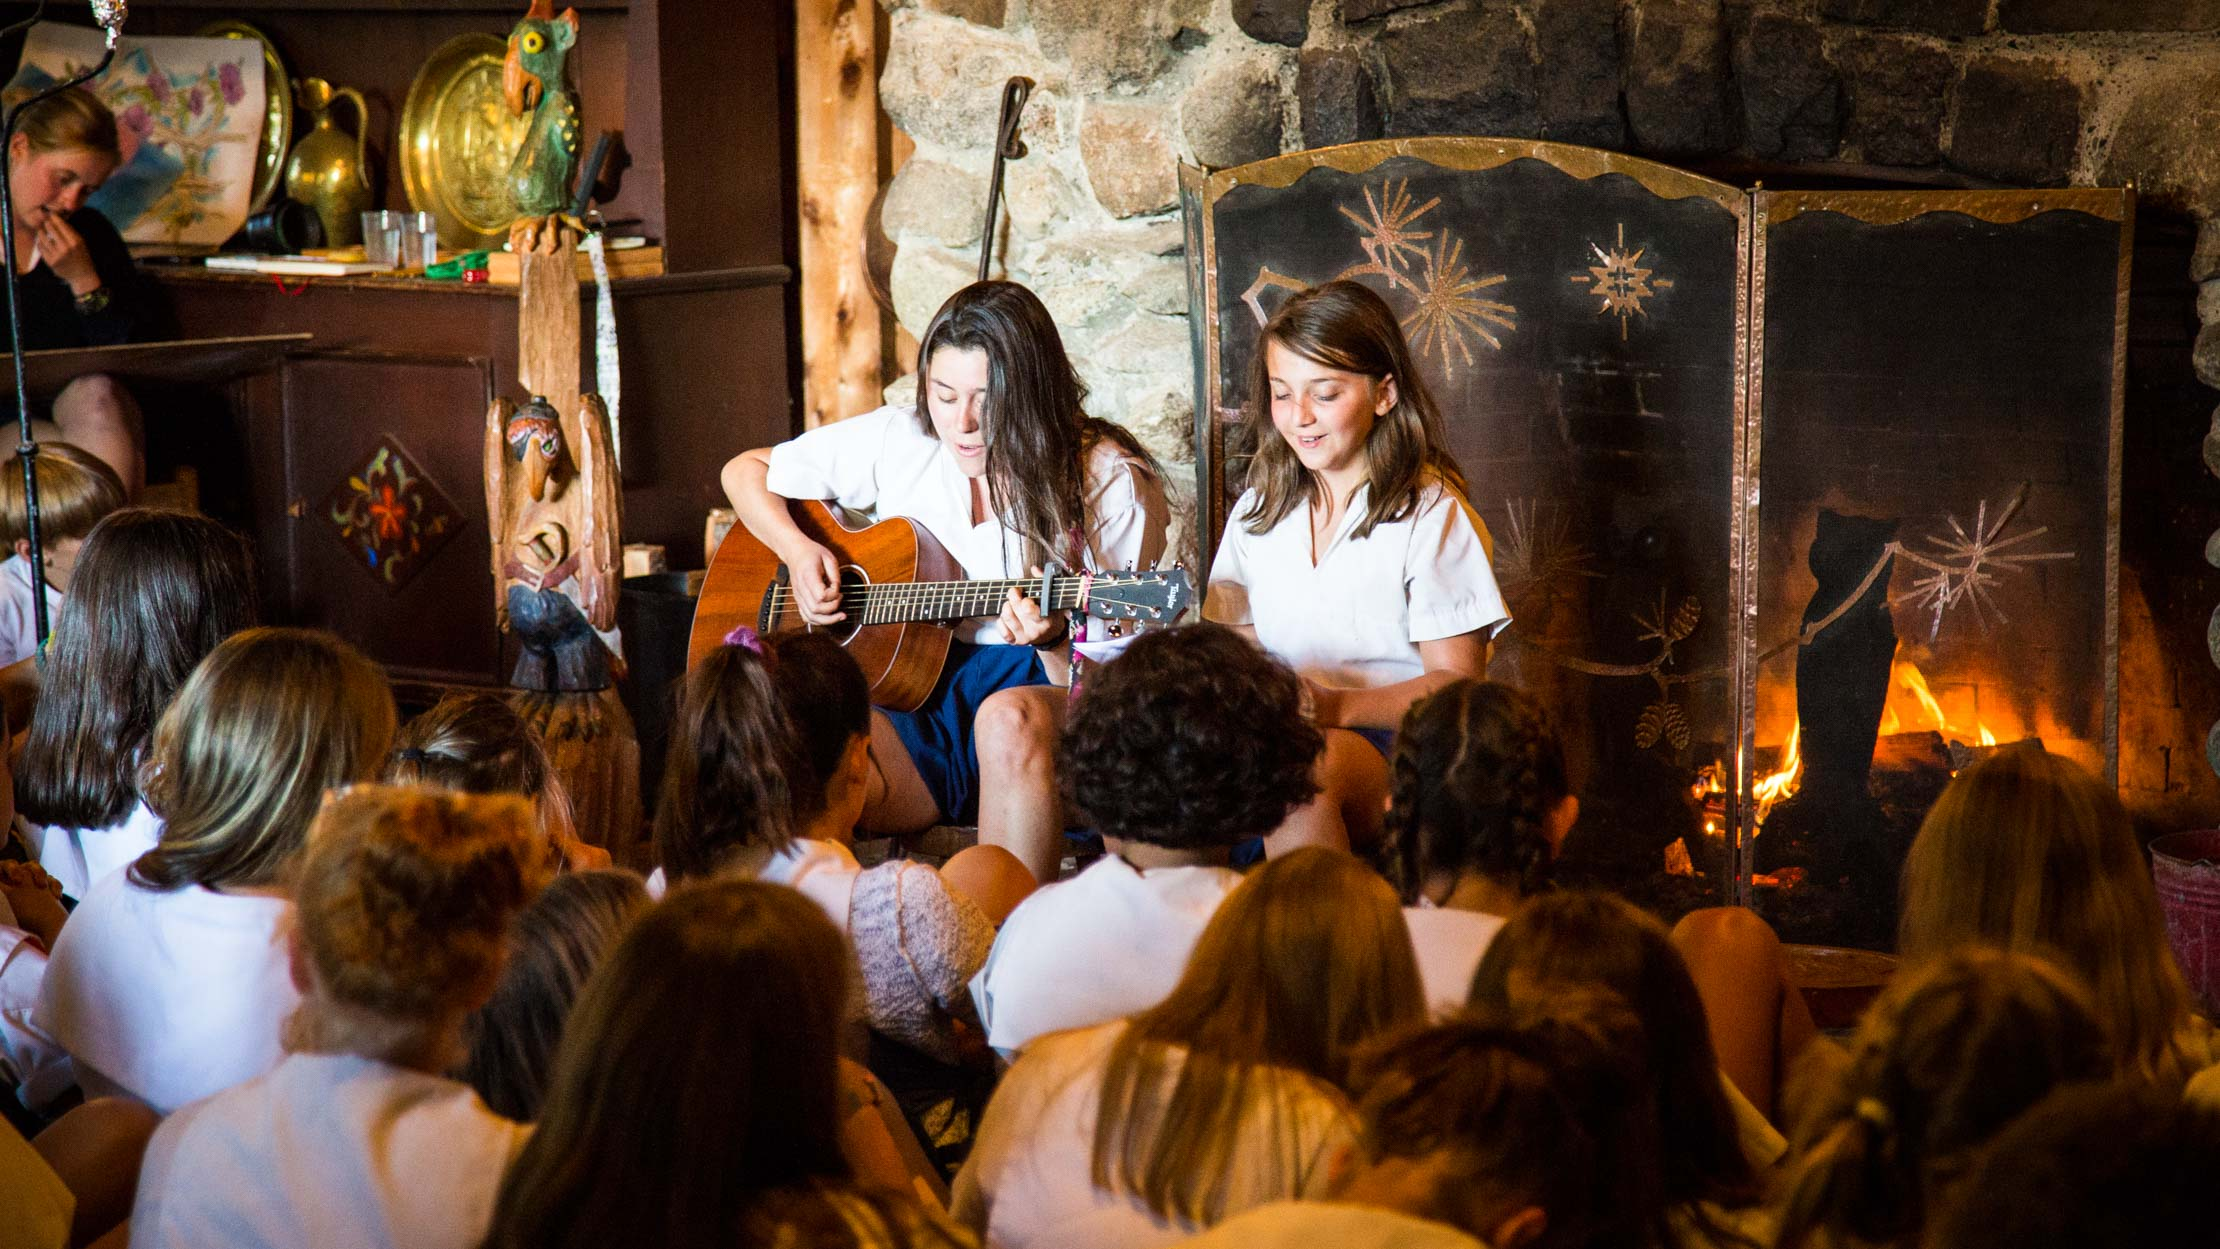 Campers play guitar at evening fire